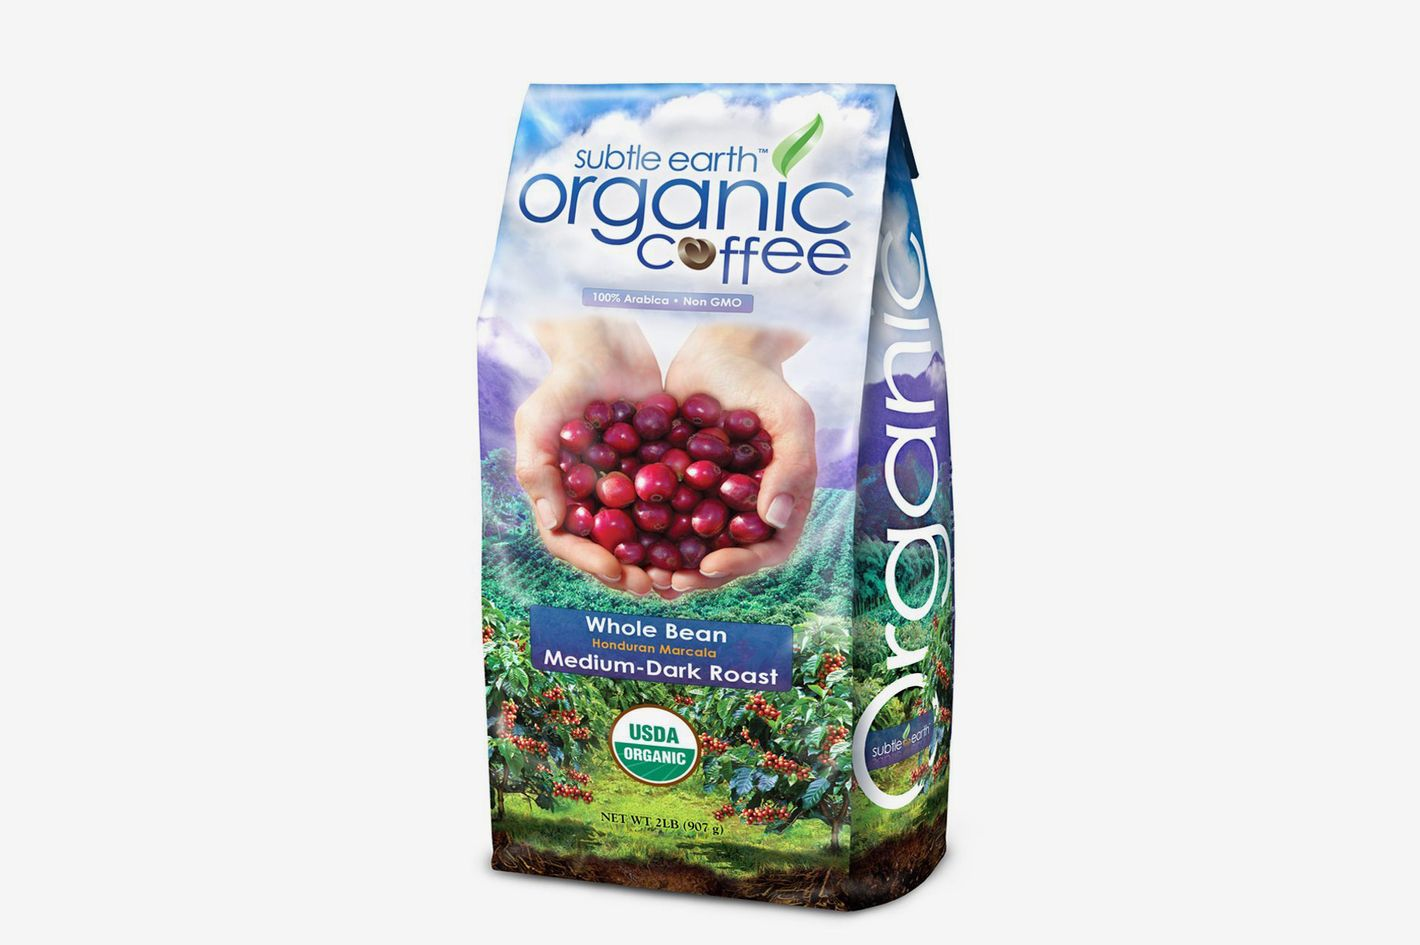 Cafe Don Pablo Subtle Earth Organic Gourmet Coffee — Medium-Dark Roast